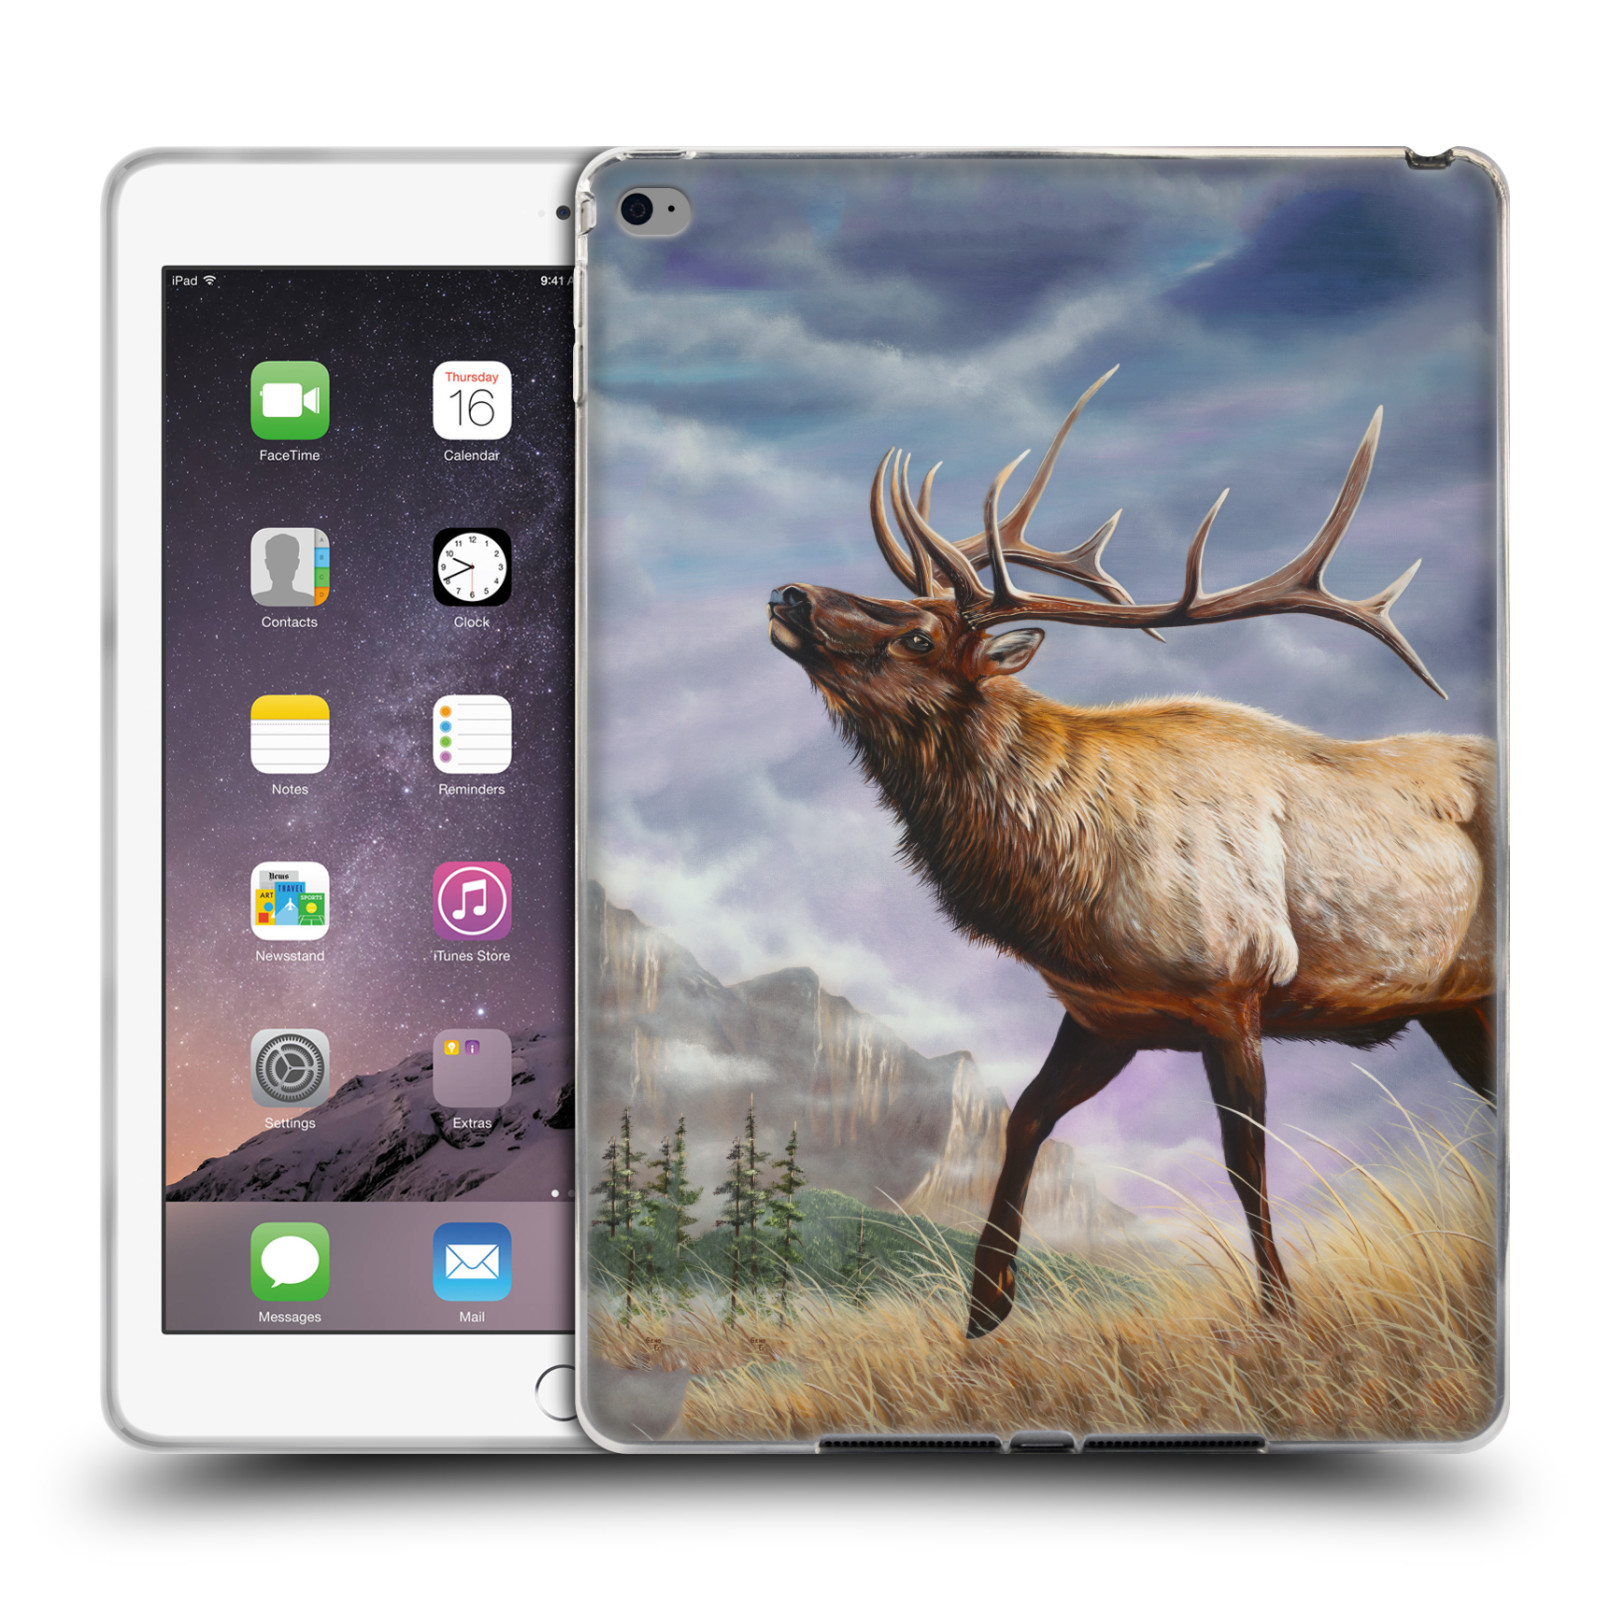 OFFICIEL-GENO-PEOPLES-ART-VIE-ETUI-COQUE-EN-GEL-POUR-APPLE-SAMSUNG-TABLETTES